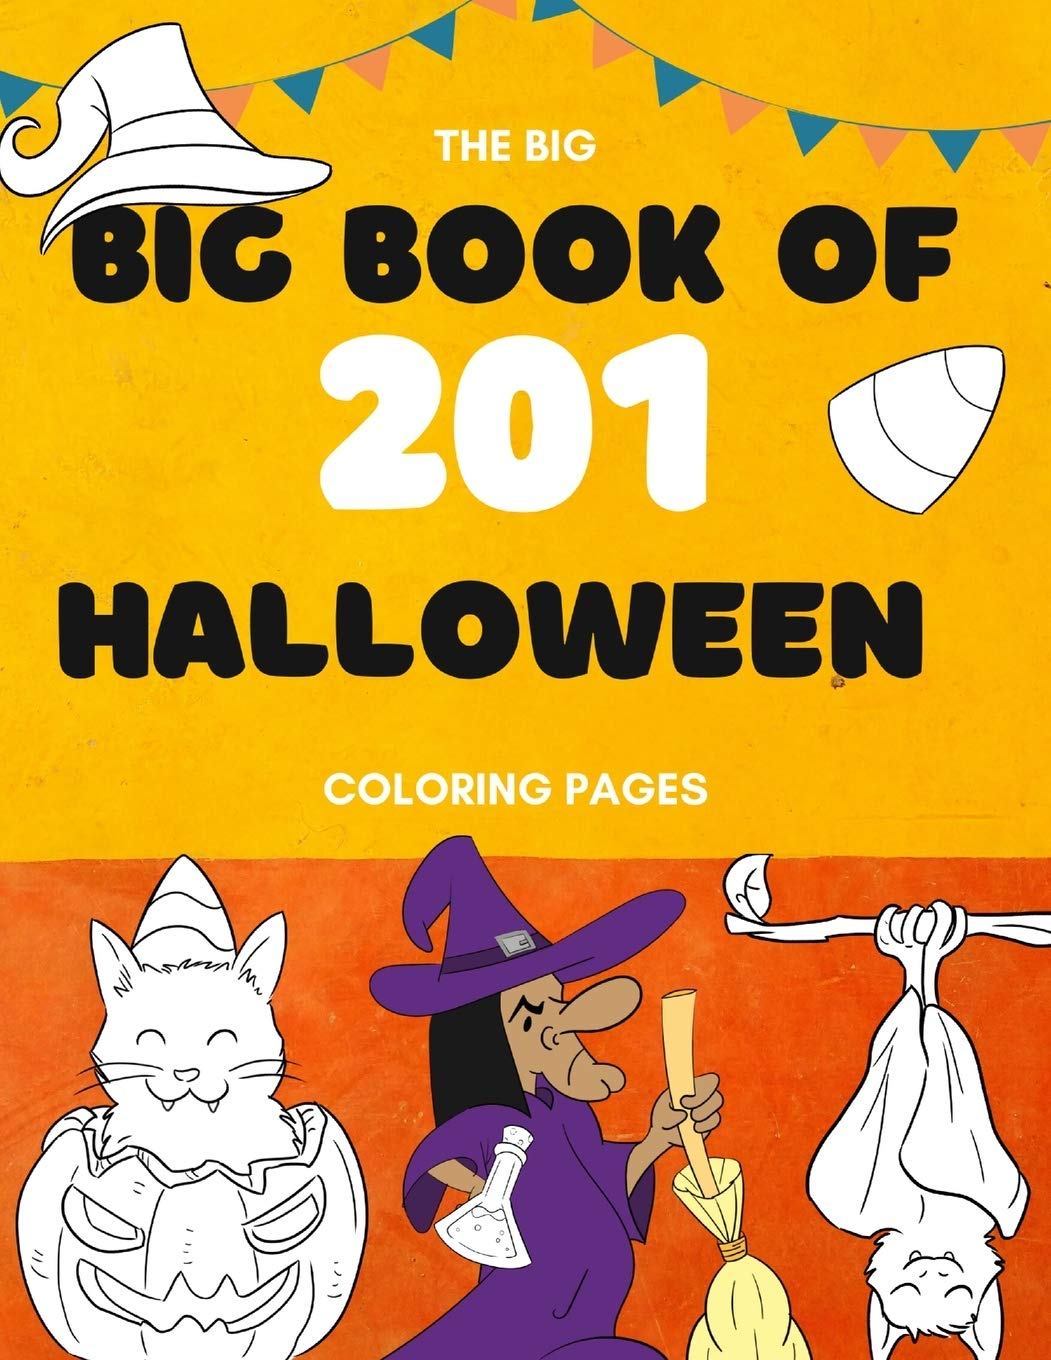 The Big Book Of 201 Coloring Book Pages Children Halloween Coloring Books For Kids Ages 4 8 Coloring Workbooks For Kids Publishing Silk 9781989971055 Amazon Com Books